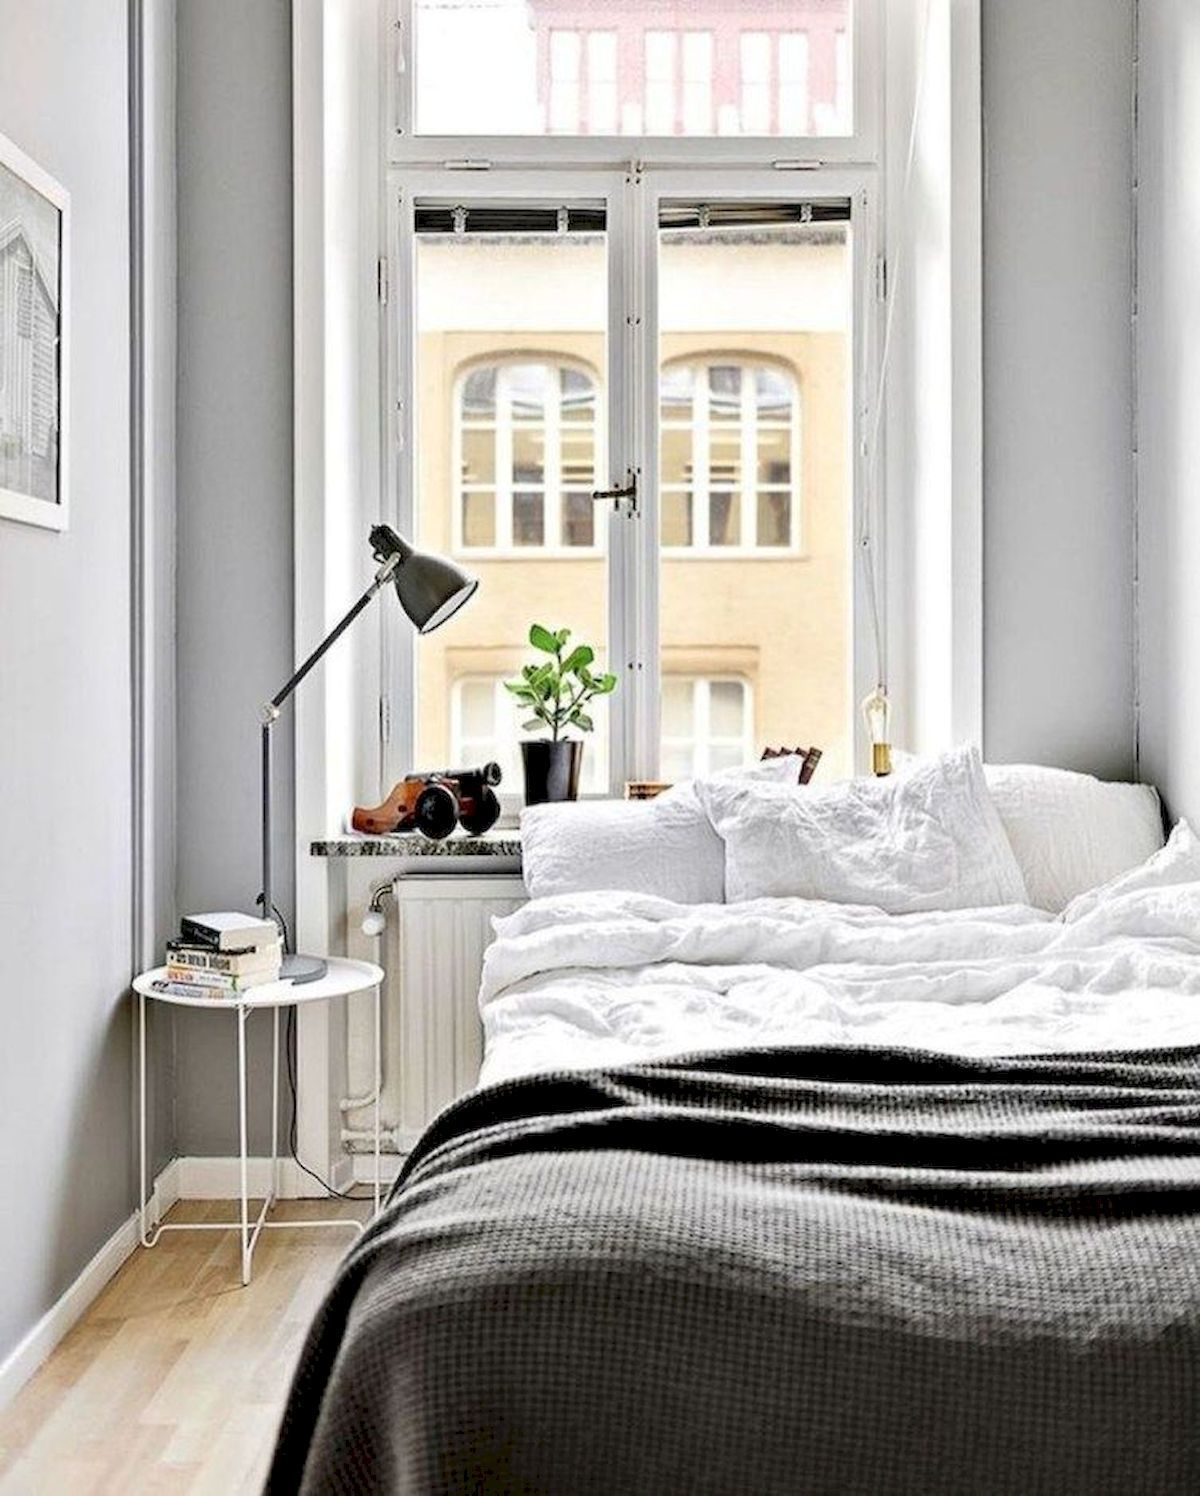 30 Awesome Small Bedroom Decorating Ideas On A Budget Bedroom Interior Remodel Bedroom Small Apartment Bedrooms